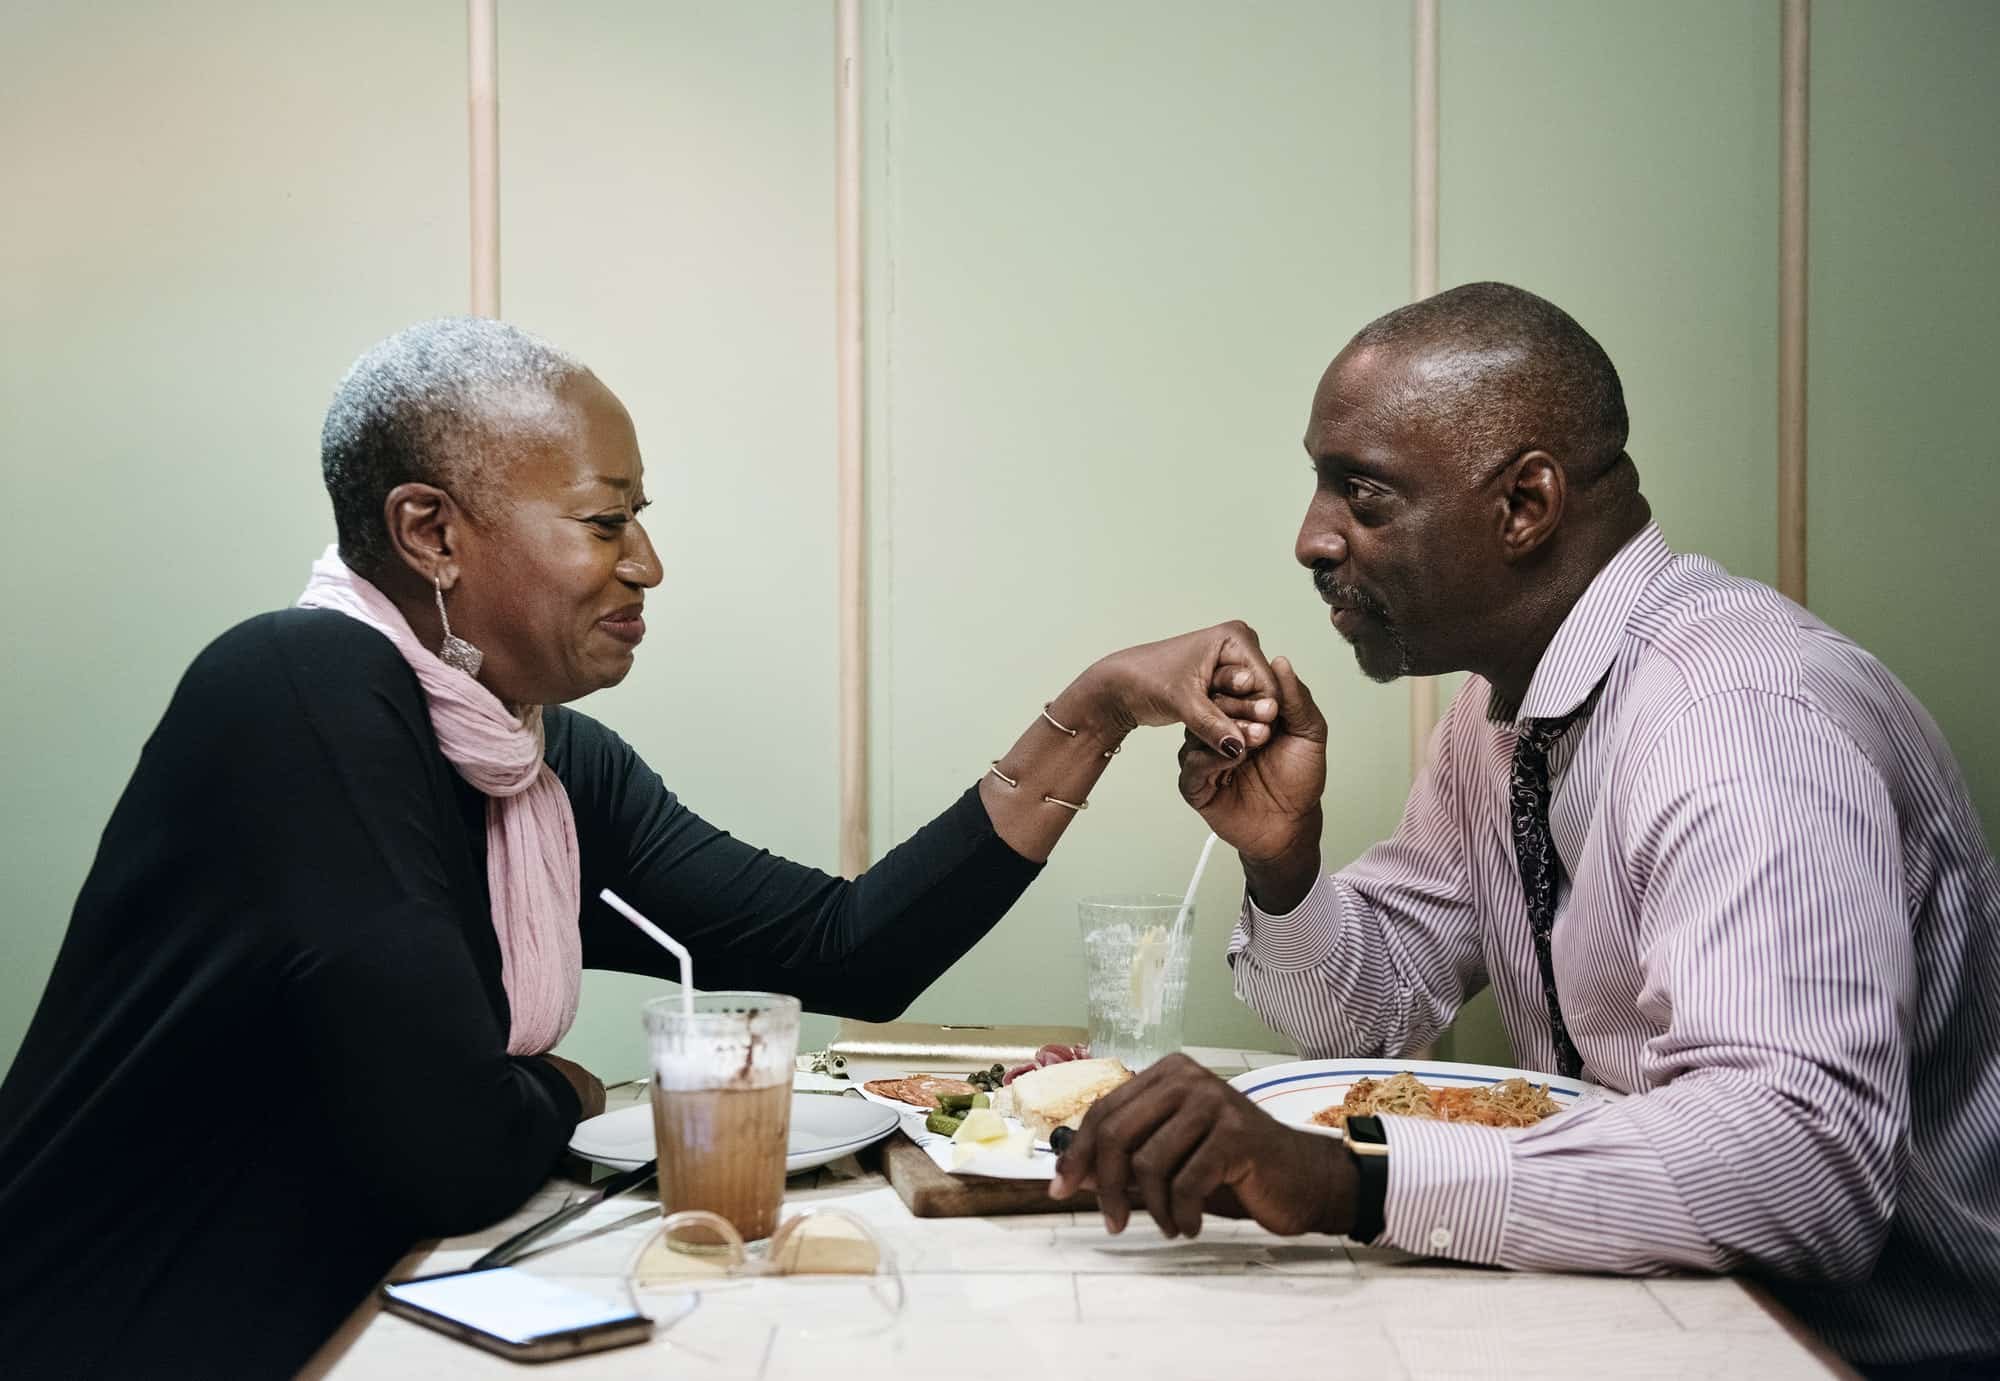 African couple on a date